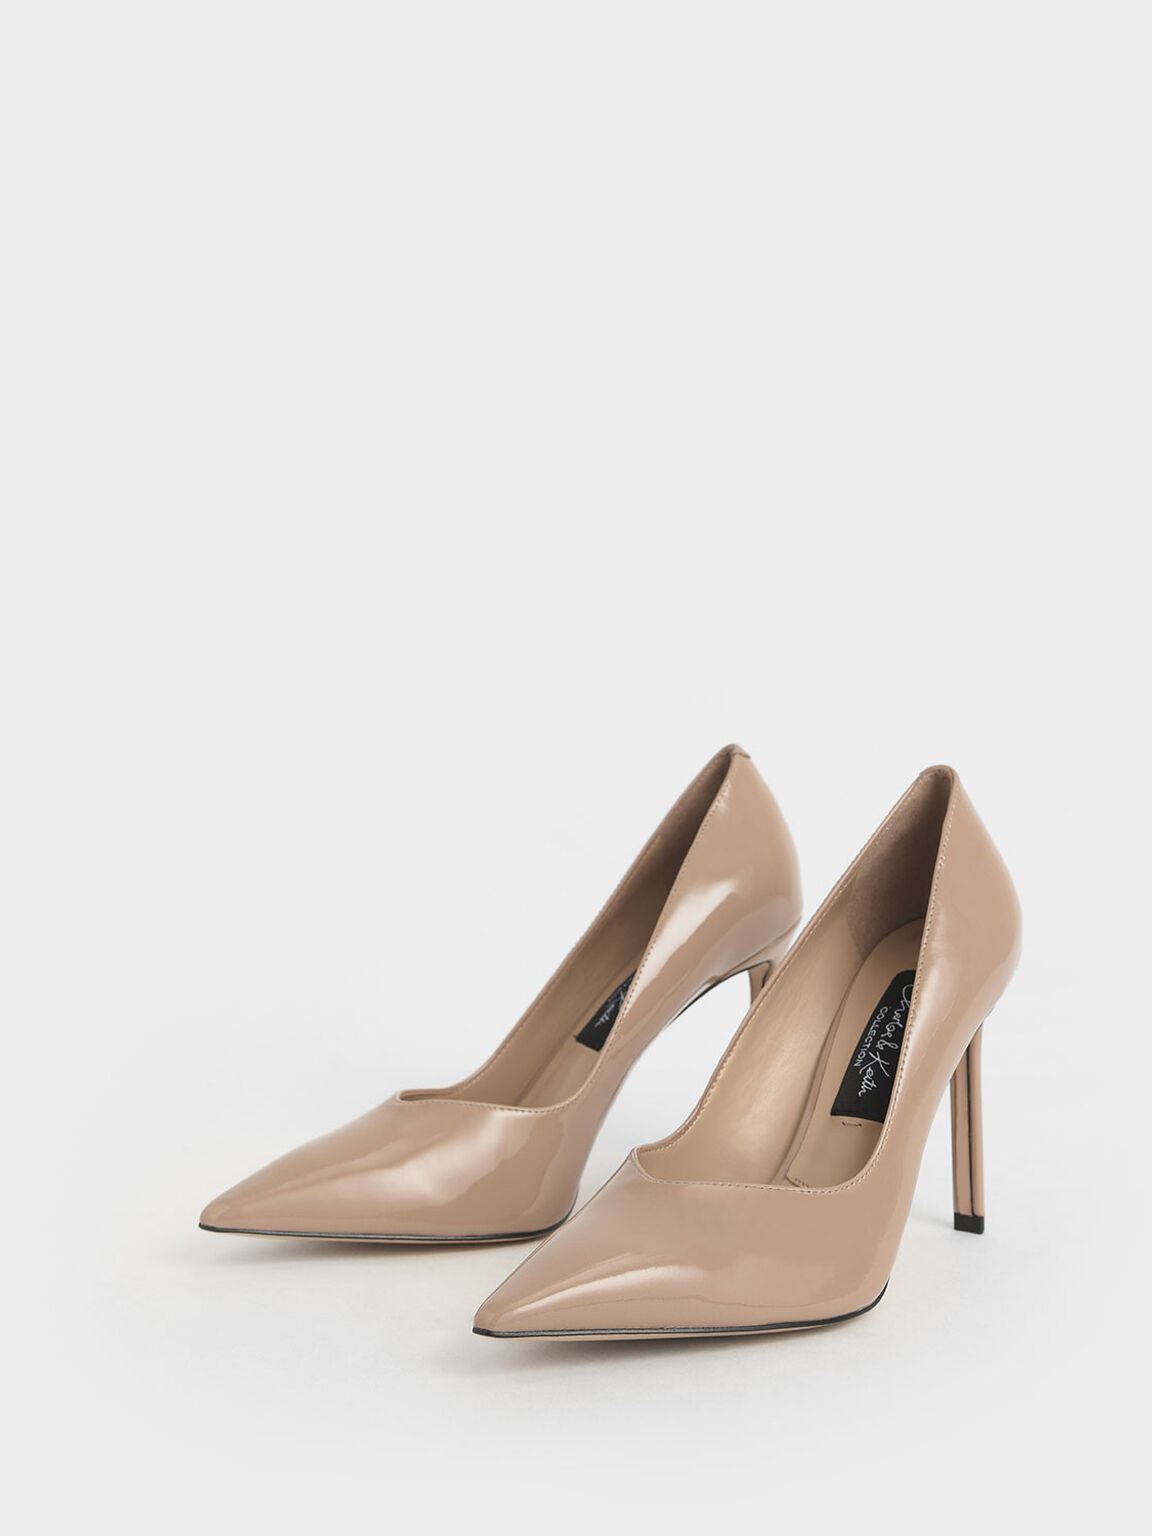 Patent Leather Pointed Toe Pumps, Nude, hi-res